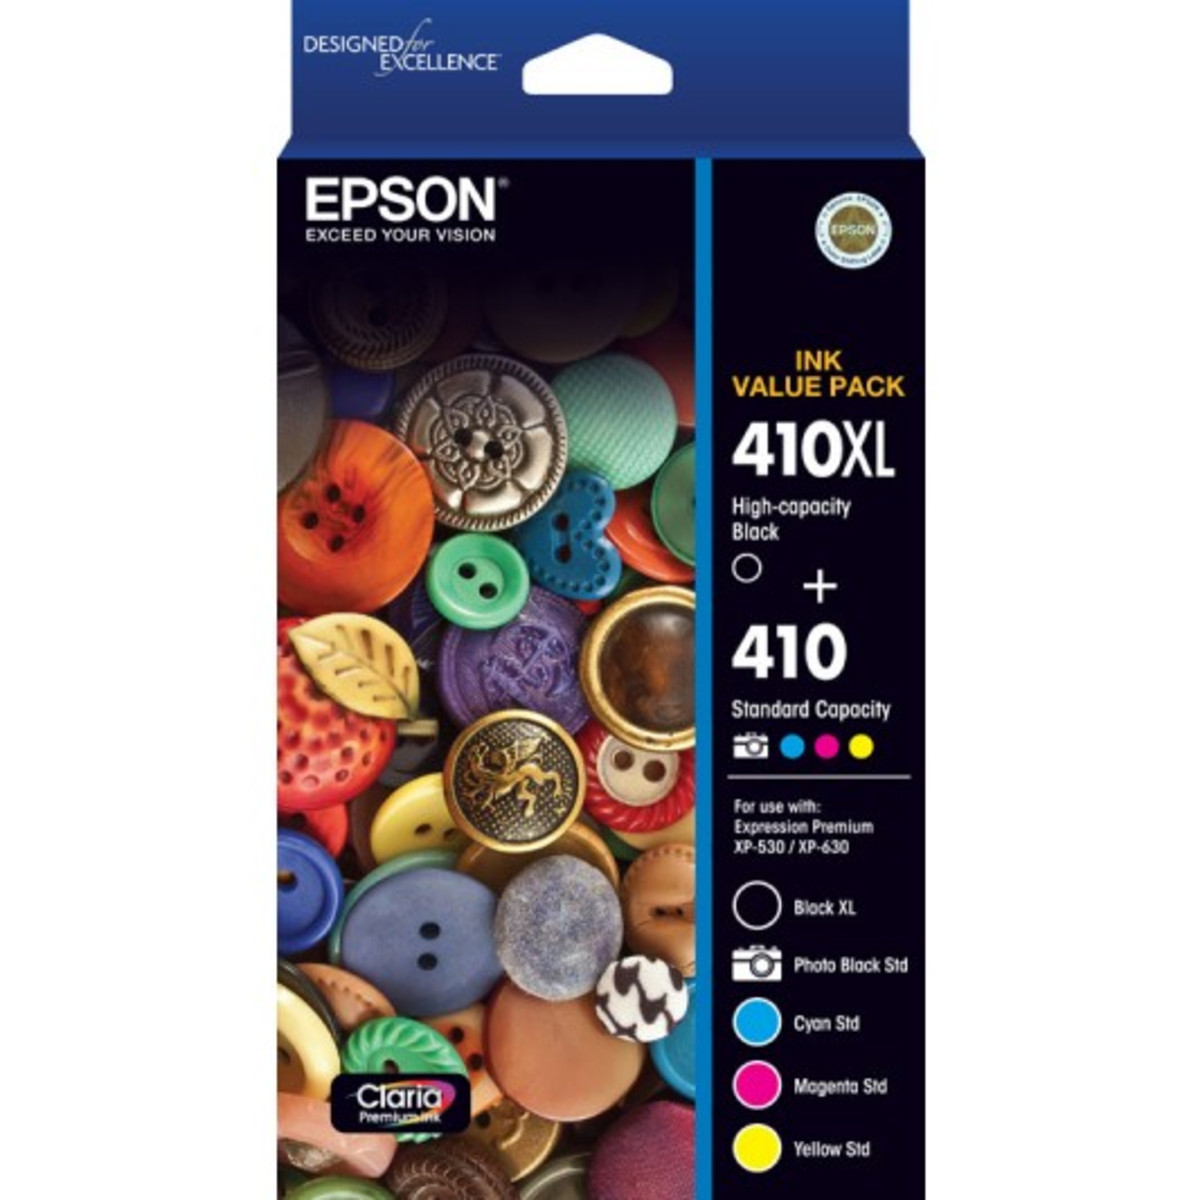 Epson 410 Inkjet Cartridges - Value Pack